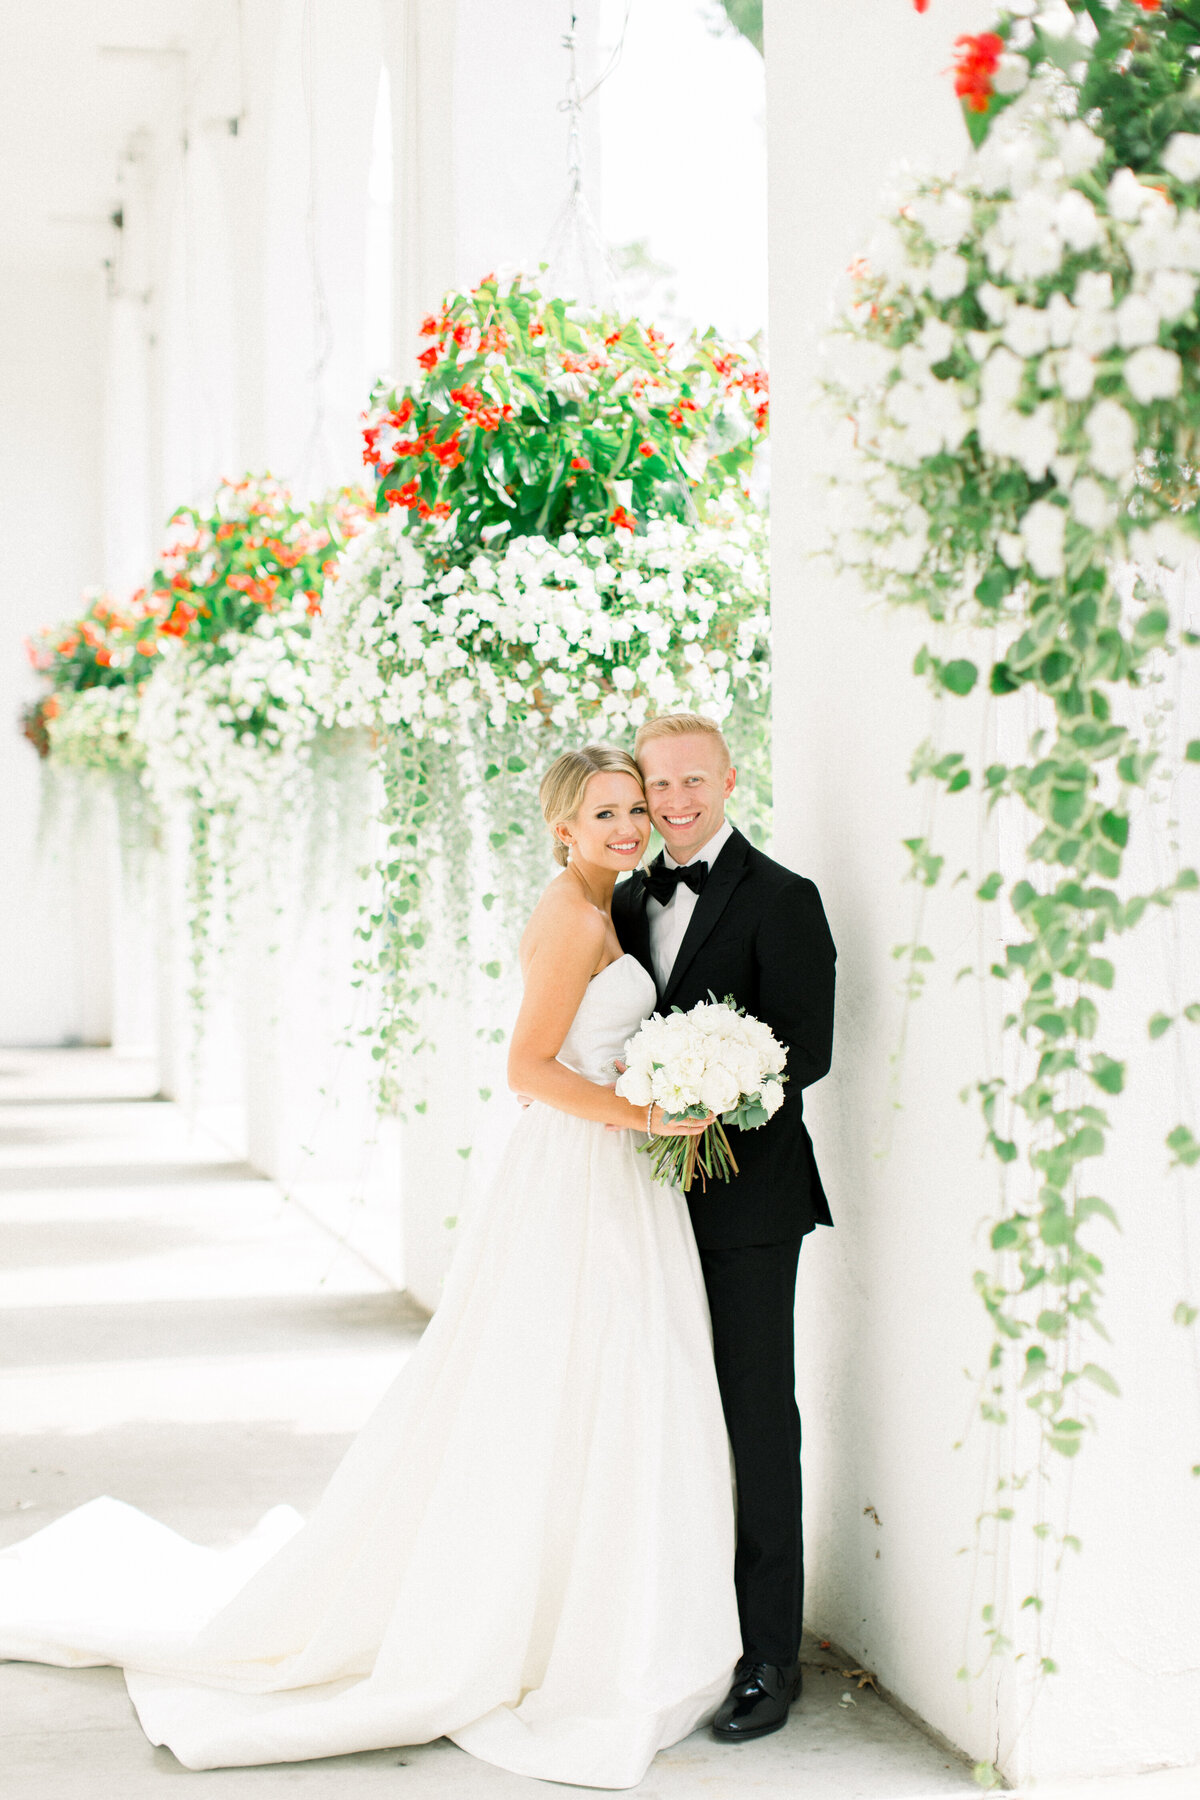 Minnesota Bride, Minnesota wedding photographer, Minneapolis wedding photographer, Wedding Dress, trish Allison photography, trish allison photography weddings, Light and airy photographer, Lafayette Club Wedding